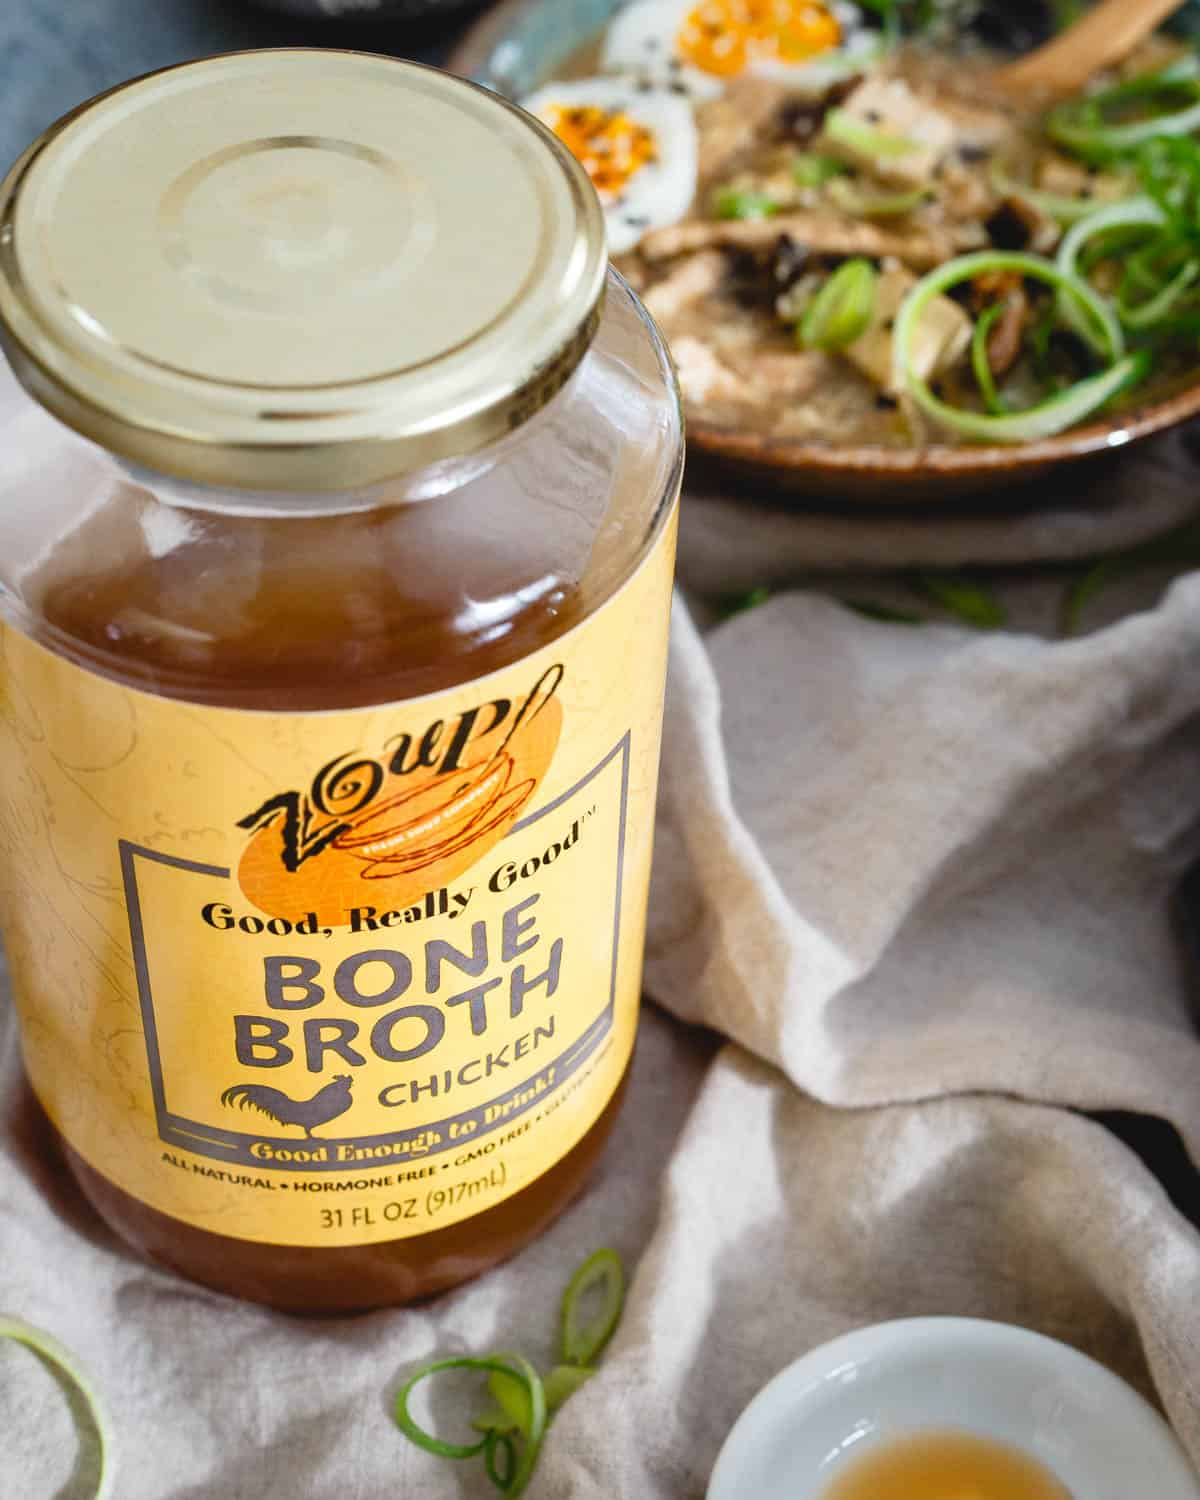 Good soup starts with good broth. Zoup! chicken bone broth brings a deep, delicious flavor base to this hot and sour egg drop soup.